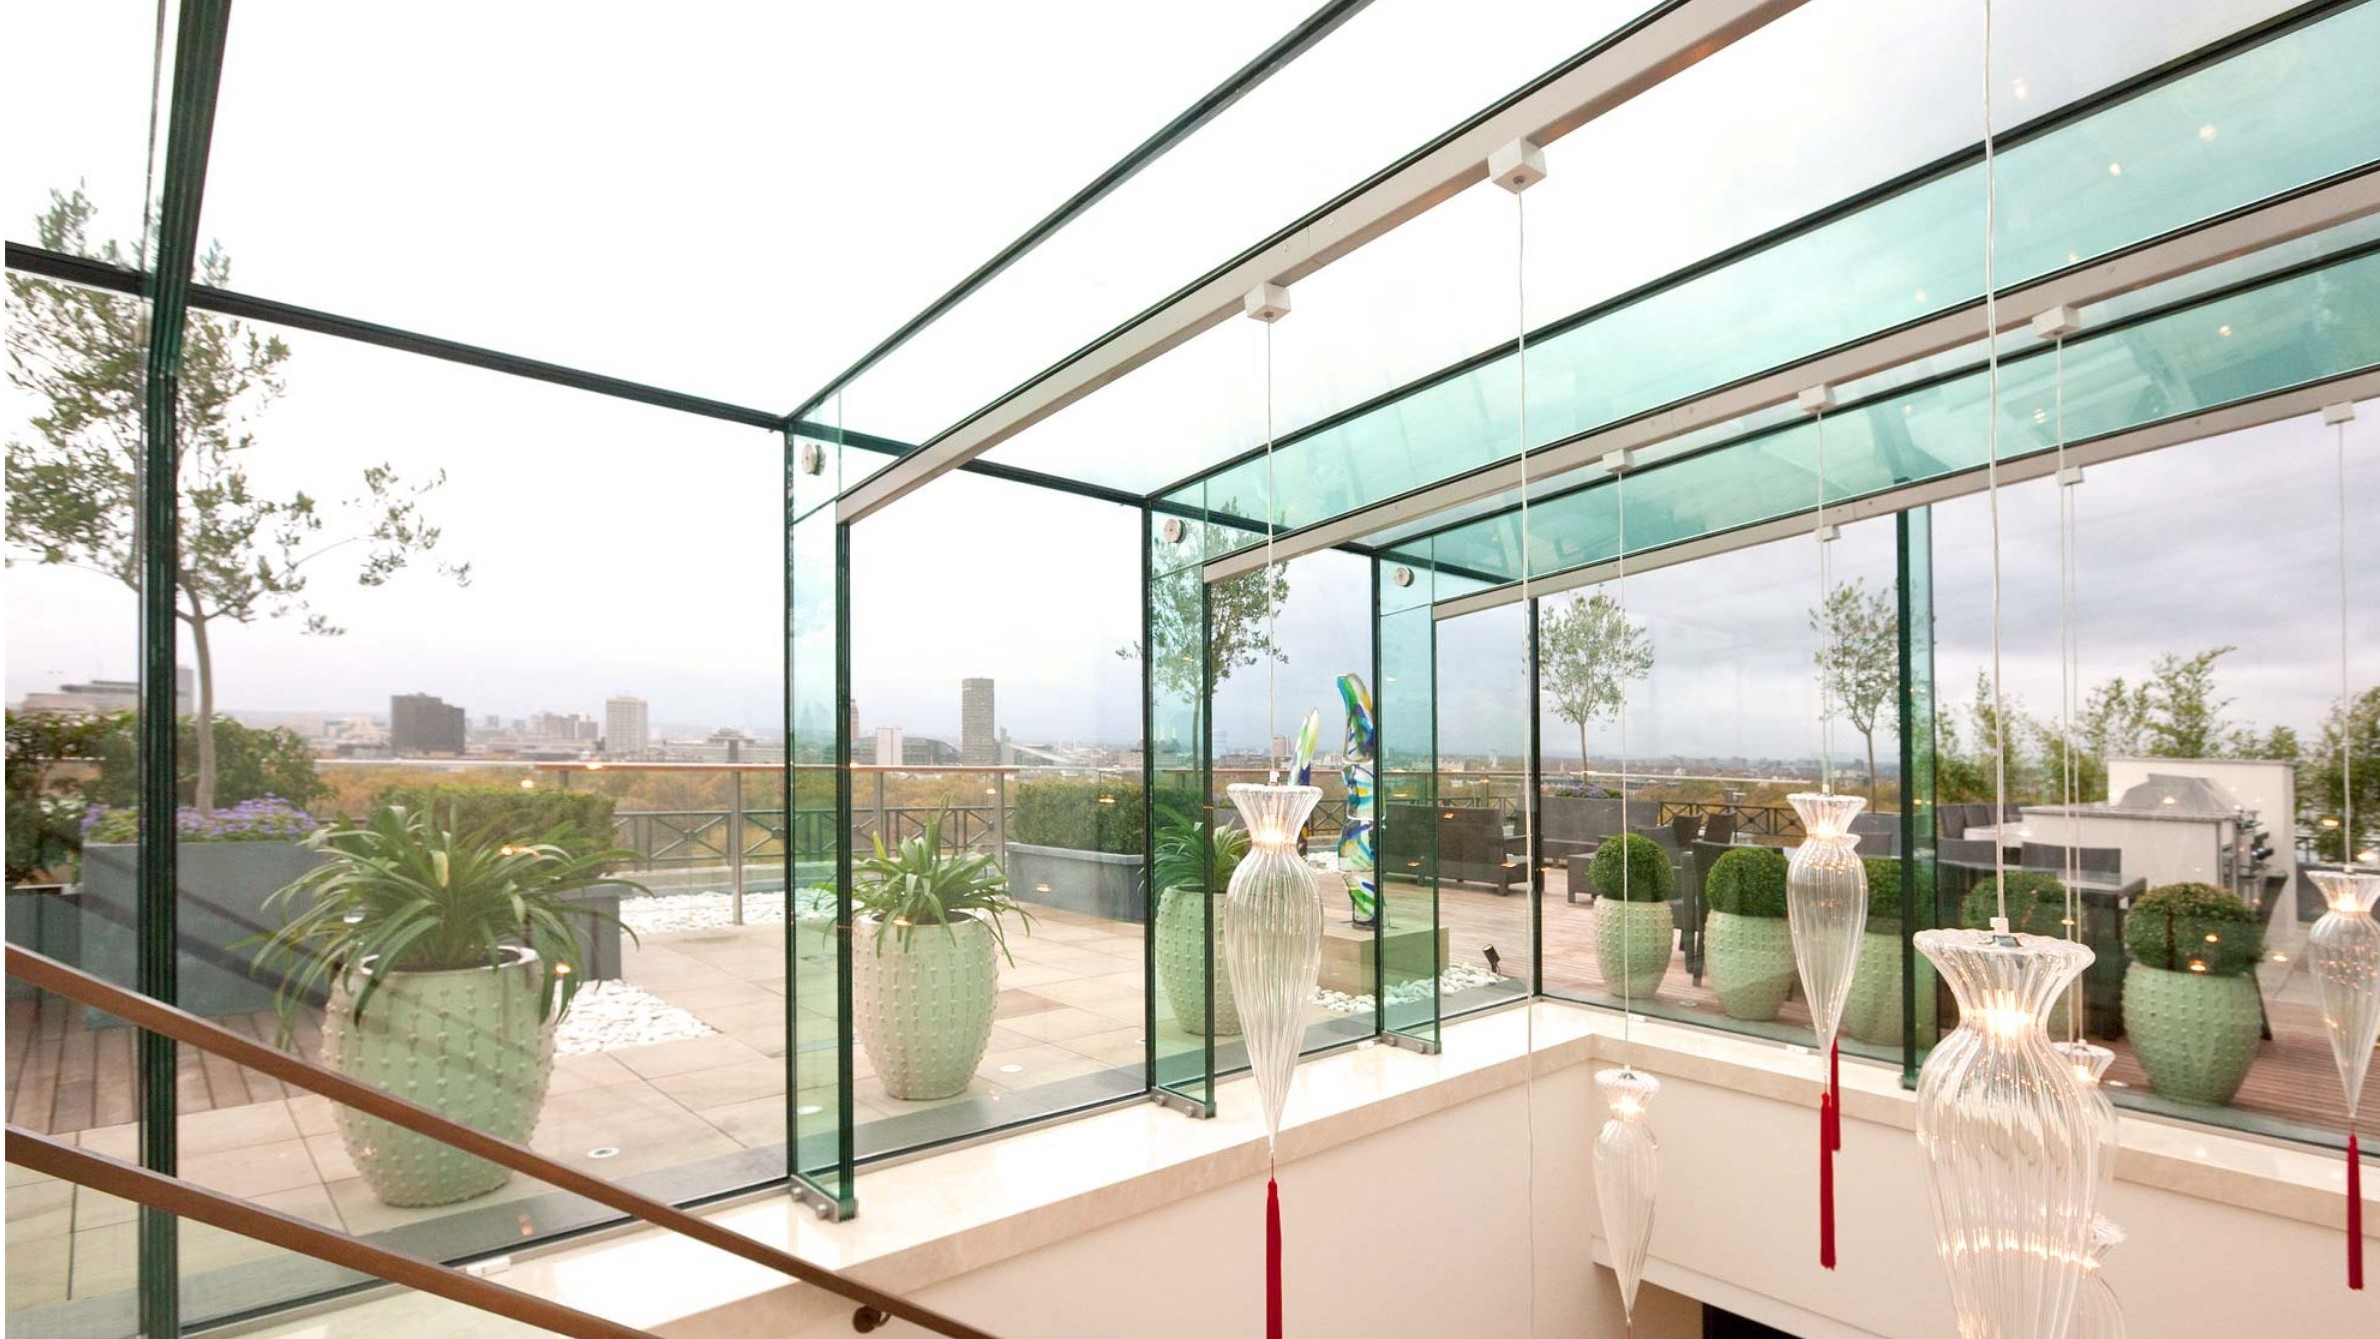 A Structural Glass Box Extension